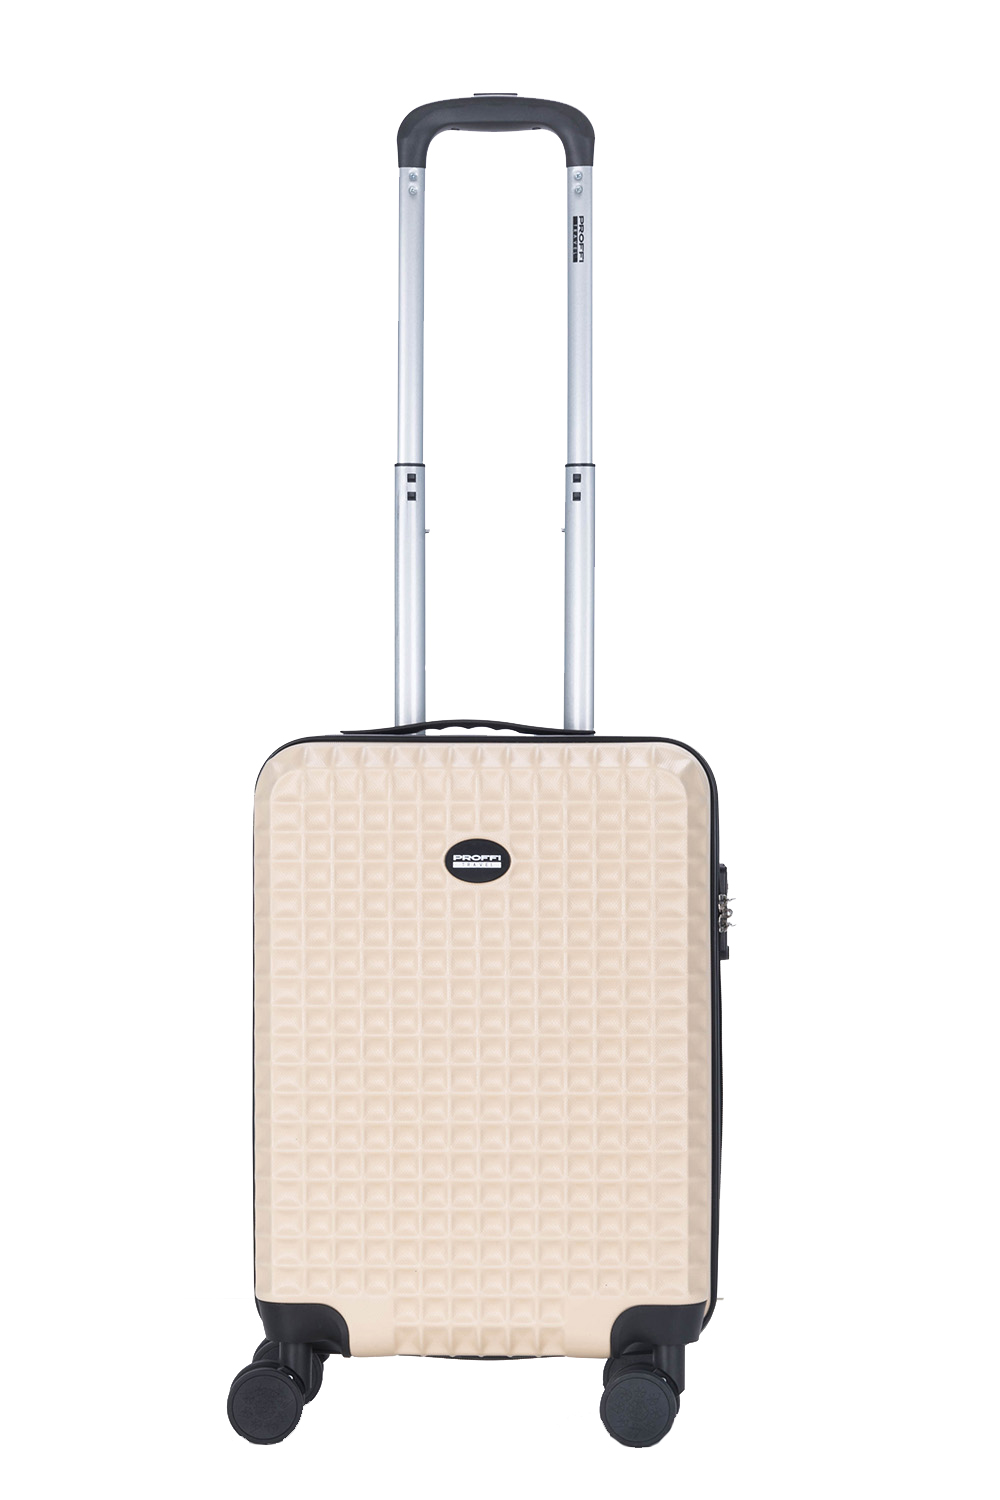 Plastic suitcase PROFFI TRAVEL Tour Quattro Smart PH9689, with built-in weighs and USB, beige, M scyl with coded lock ni5l travel luggage suitcase strap baggage backpack belt